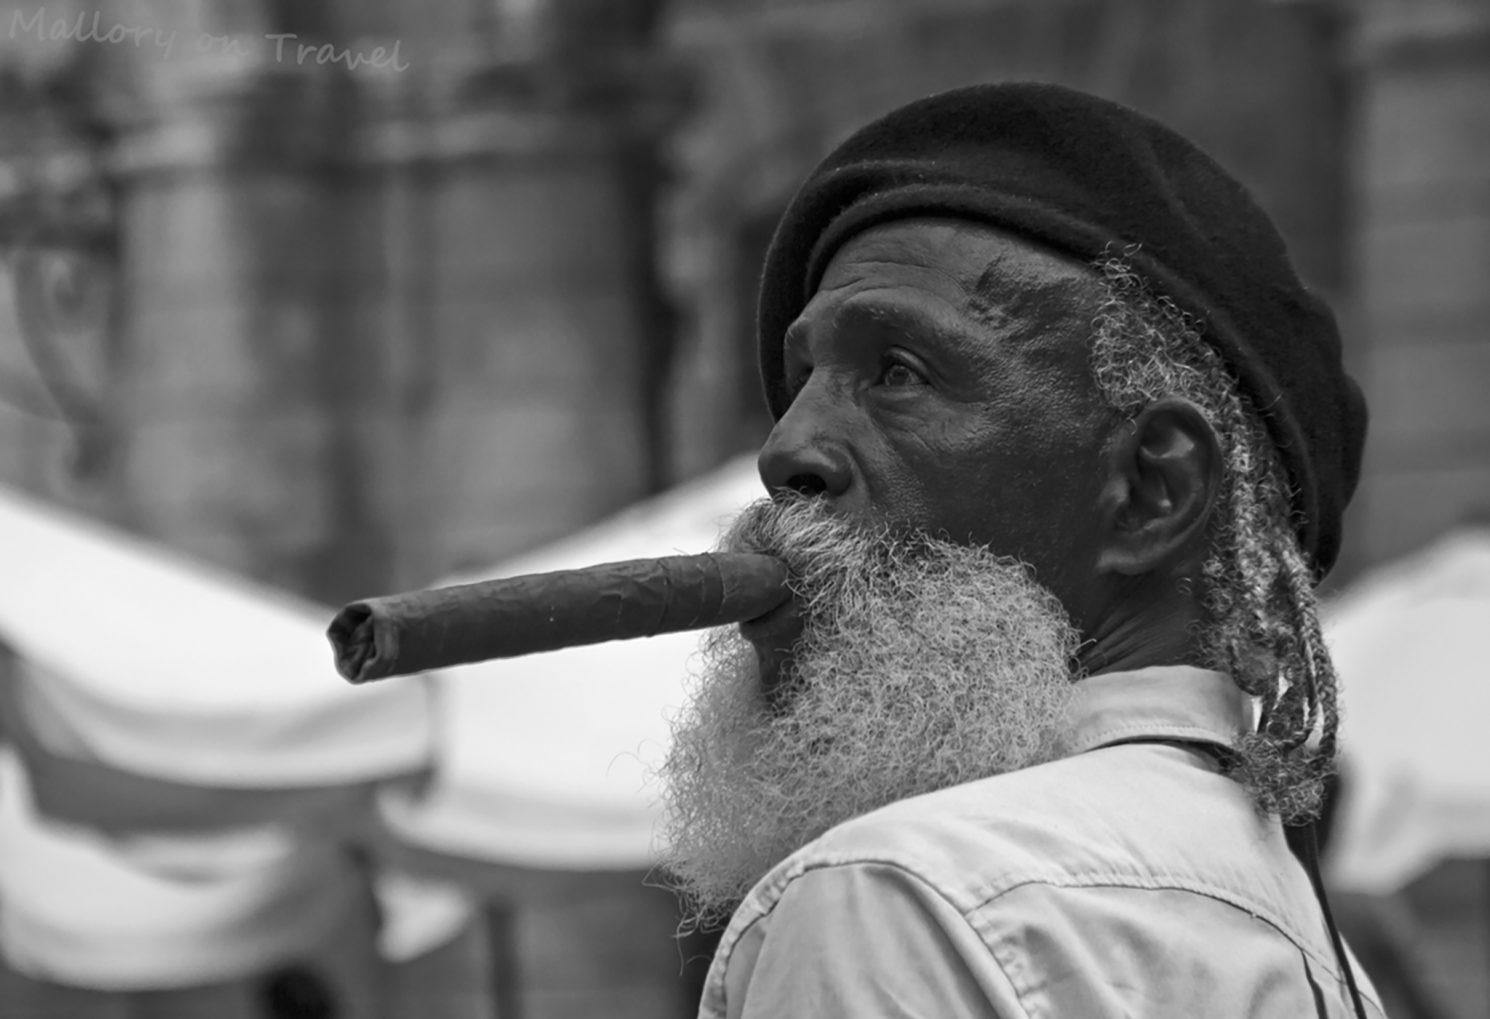 A street model in Havana, on the Caribbean island of Cuba on Mallory on Travel adventure photography iain-mallory-300-239_cuban model